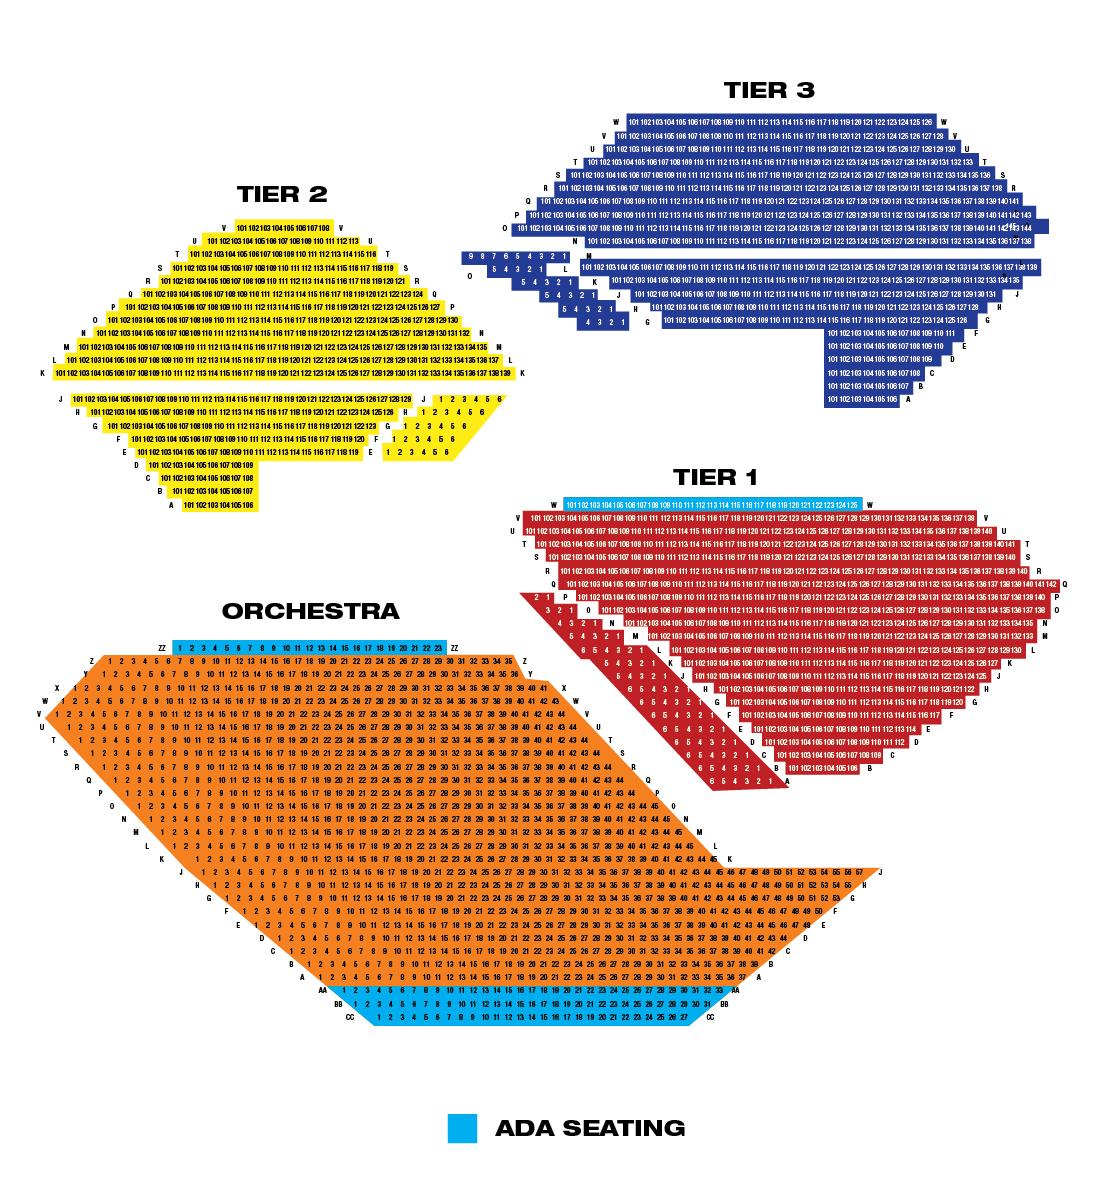 Segerstrom seating chart hobit fullring co